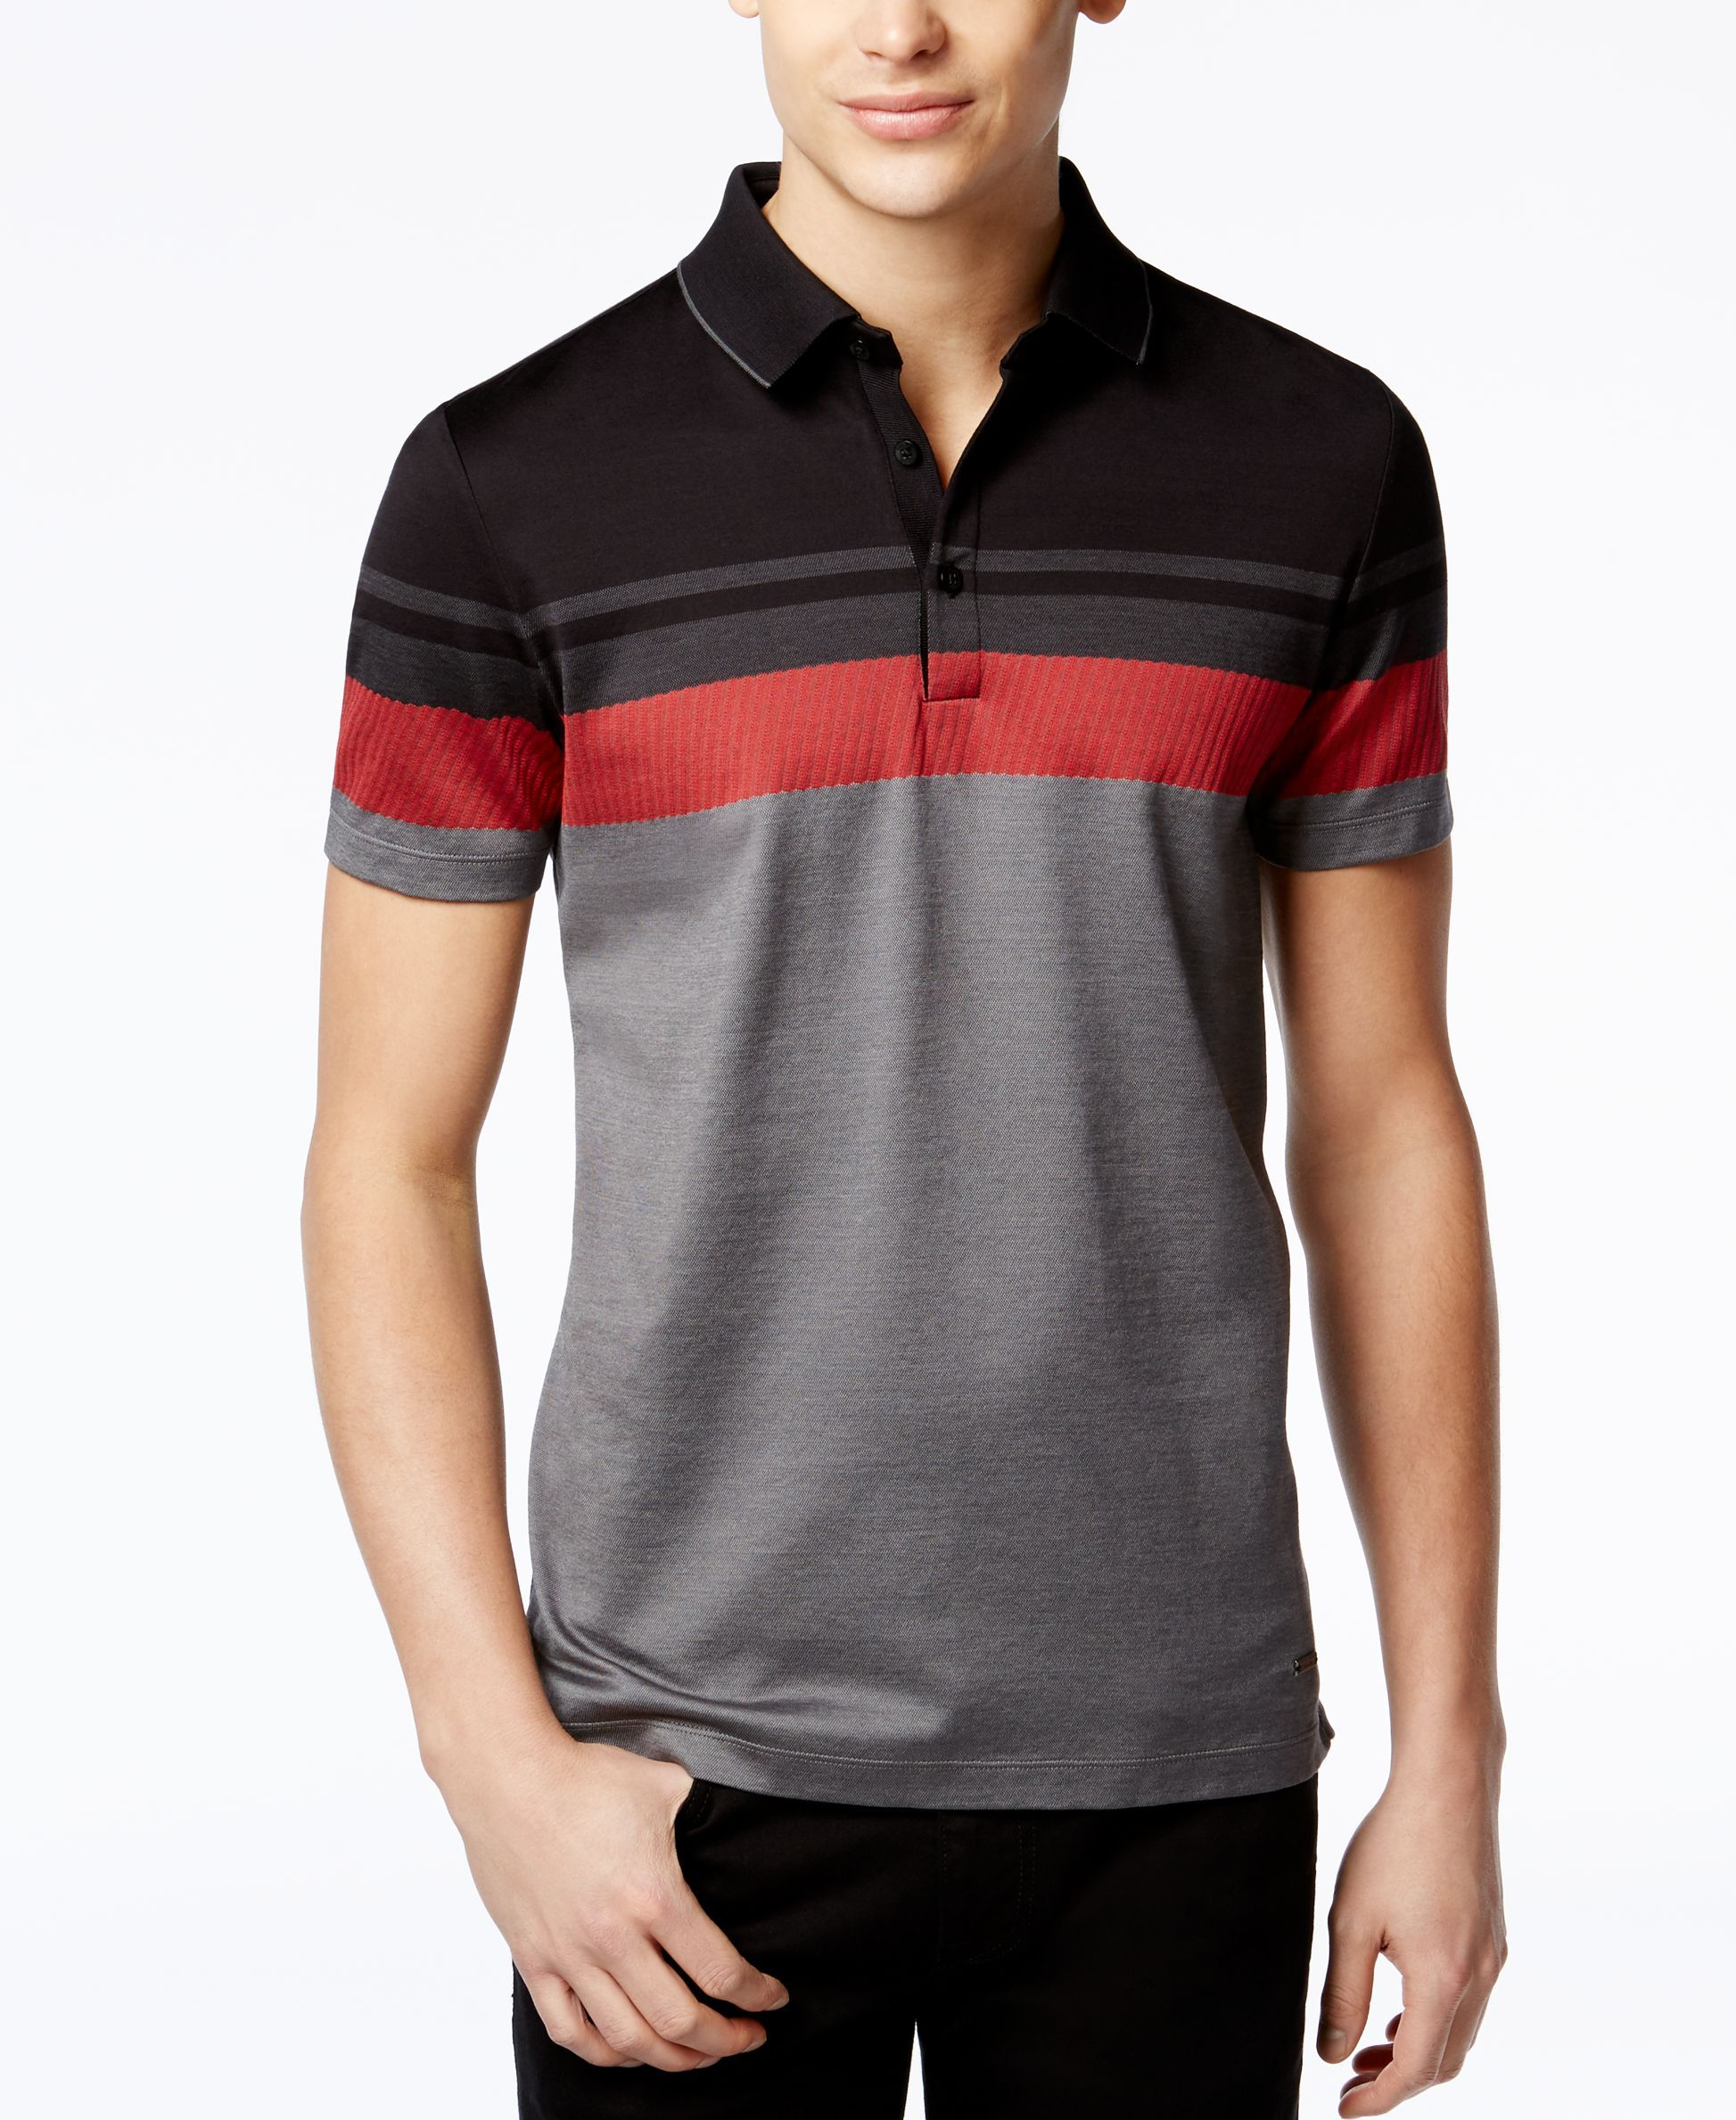 b525d40e8c110 Best Designer Polo Shirts  Calvin Klein. Premium Colorblocked Polo Shirt